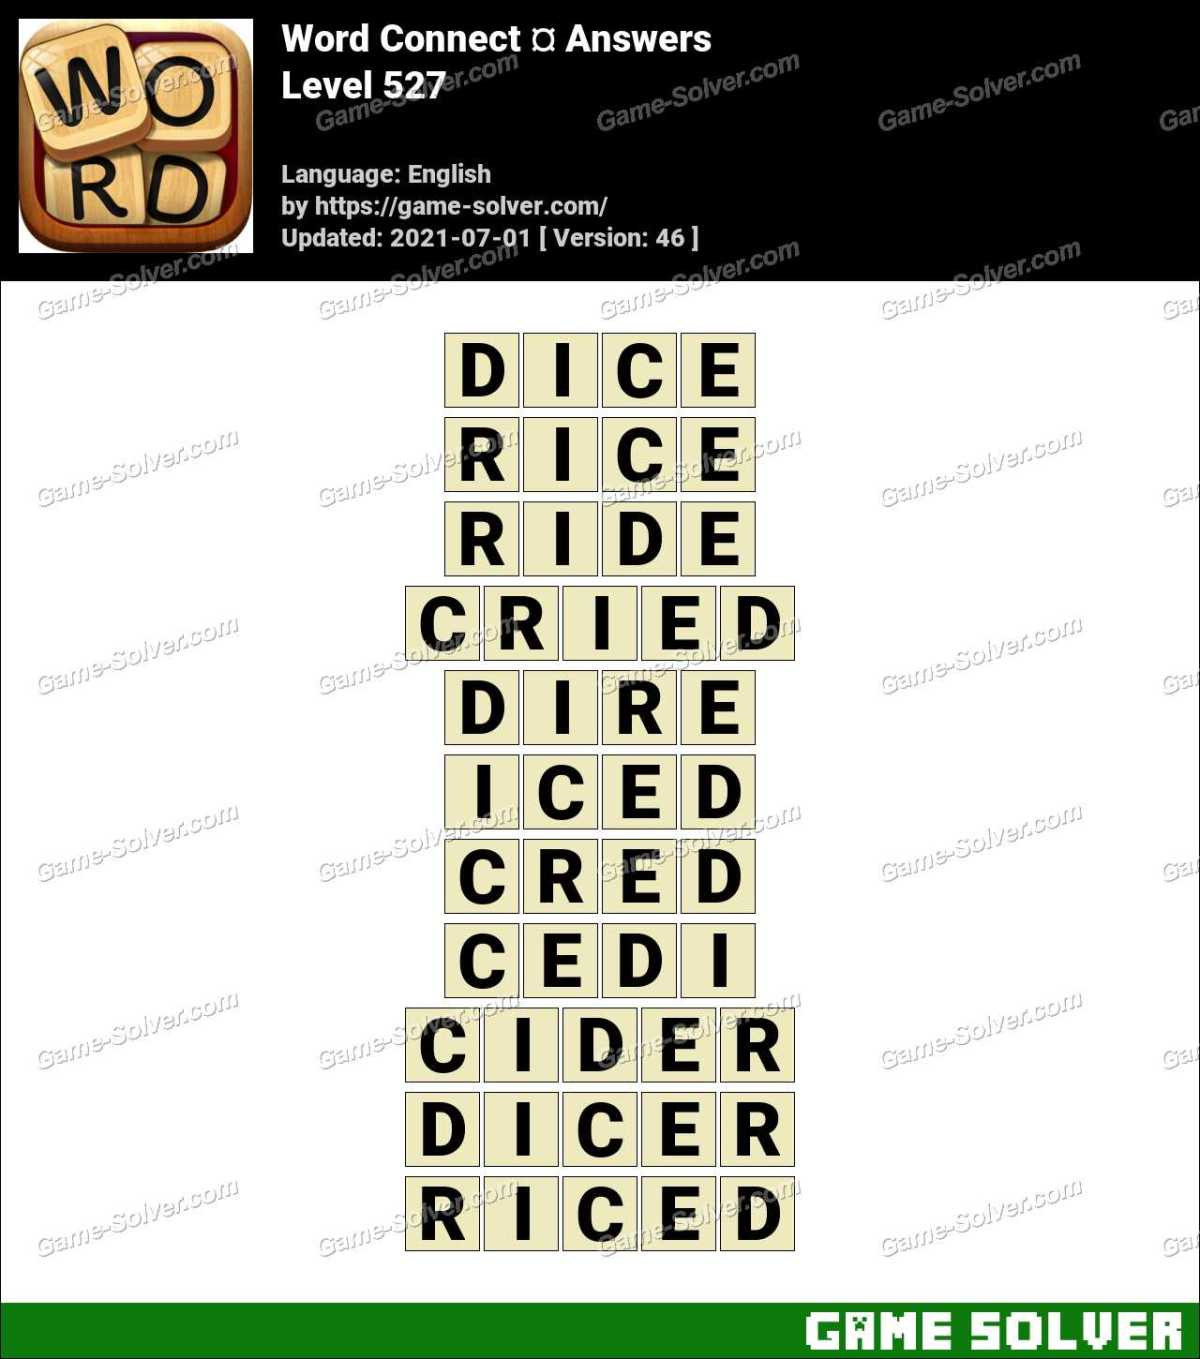 Word Connect Level 527 Answers